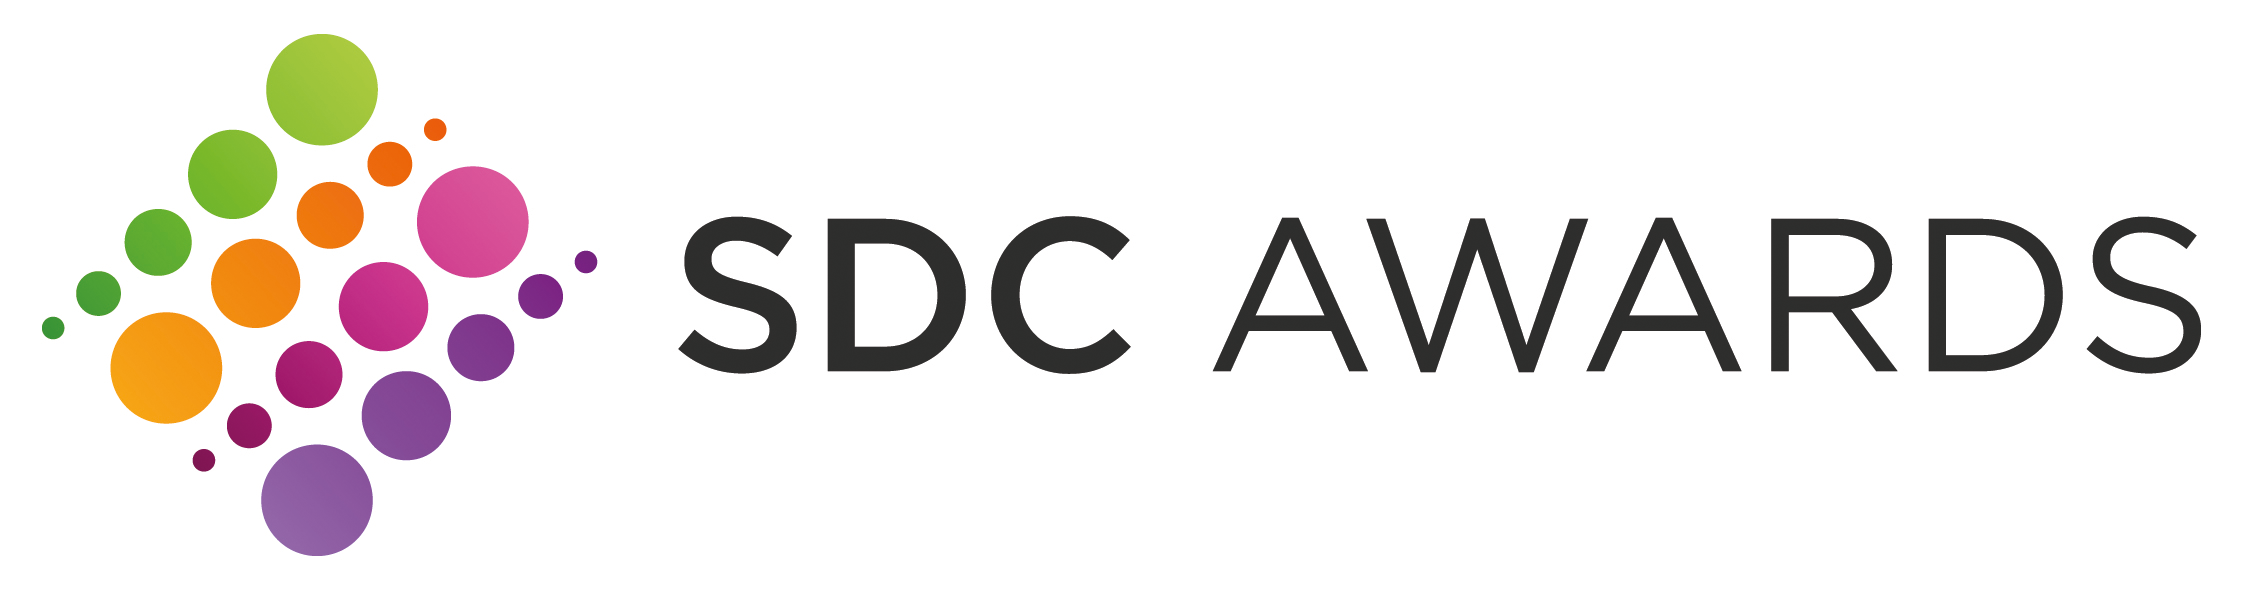 /images/sdcawards-logo-dark.png